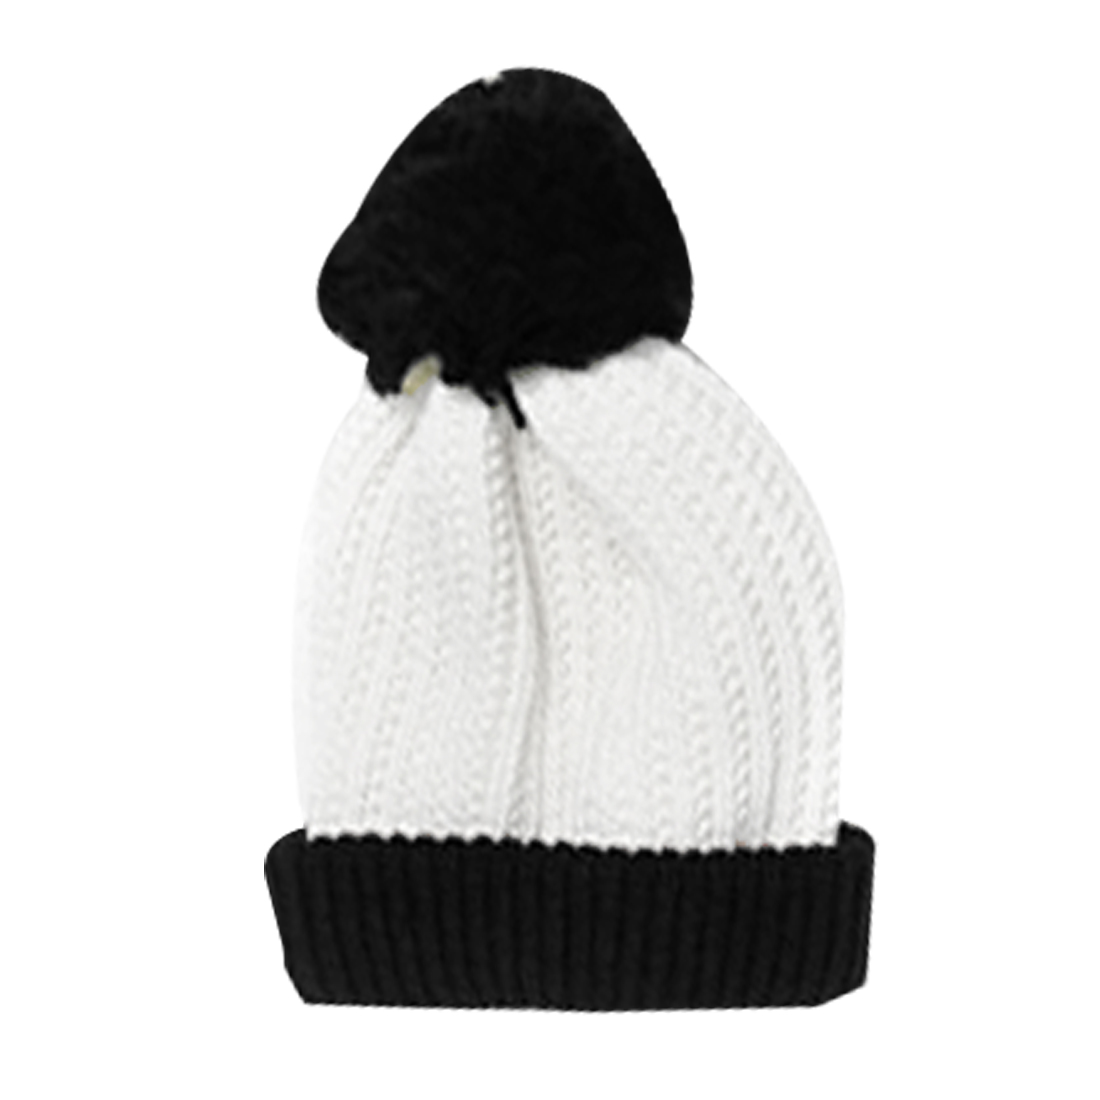 Mens Off White Black Pom Pom Top Stretchy Rolled Up Casual Winter Beanie Cap